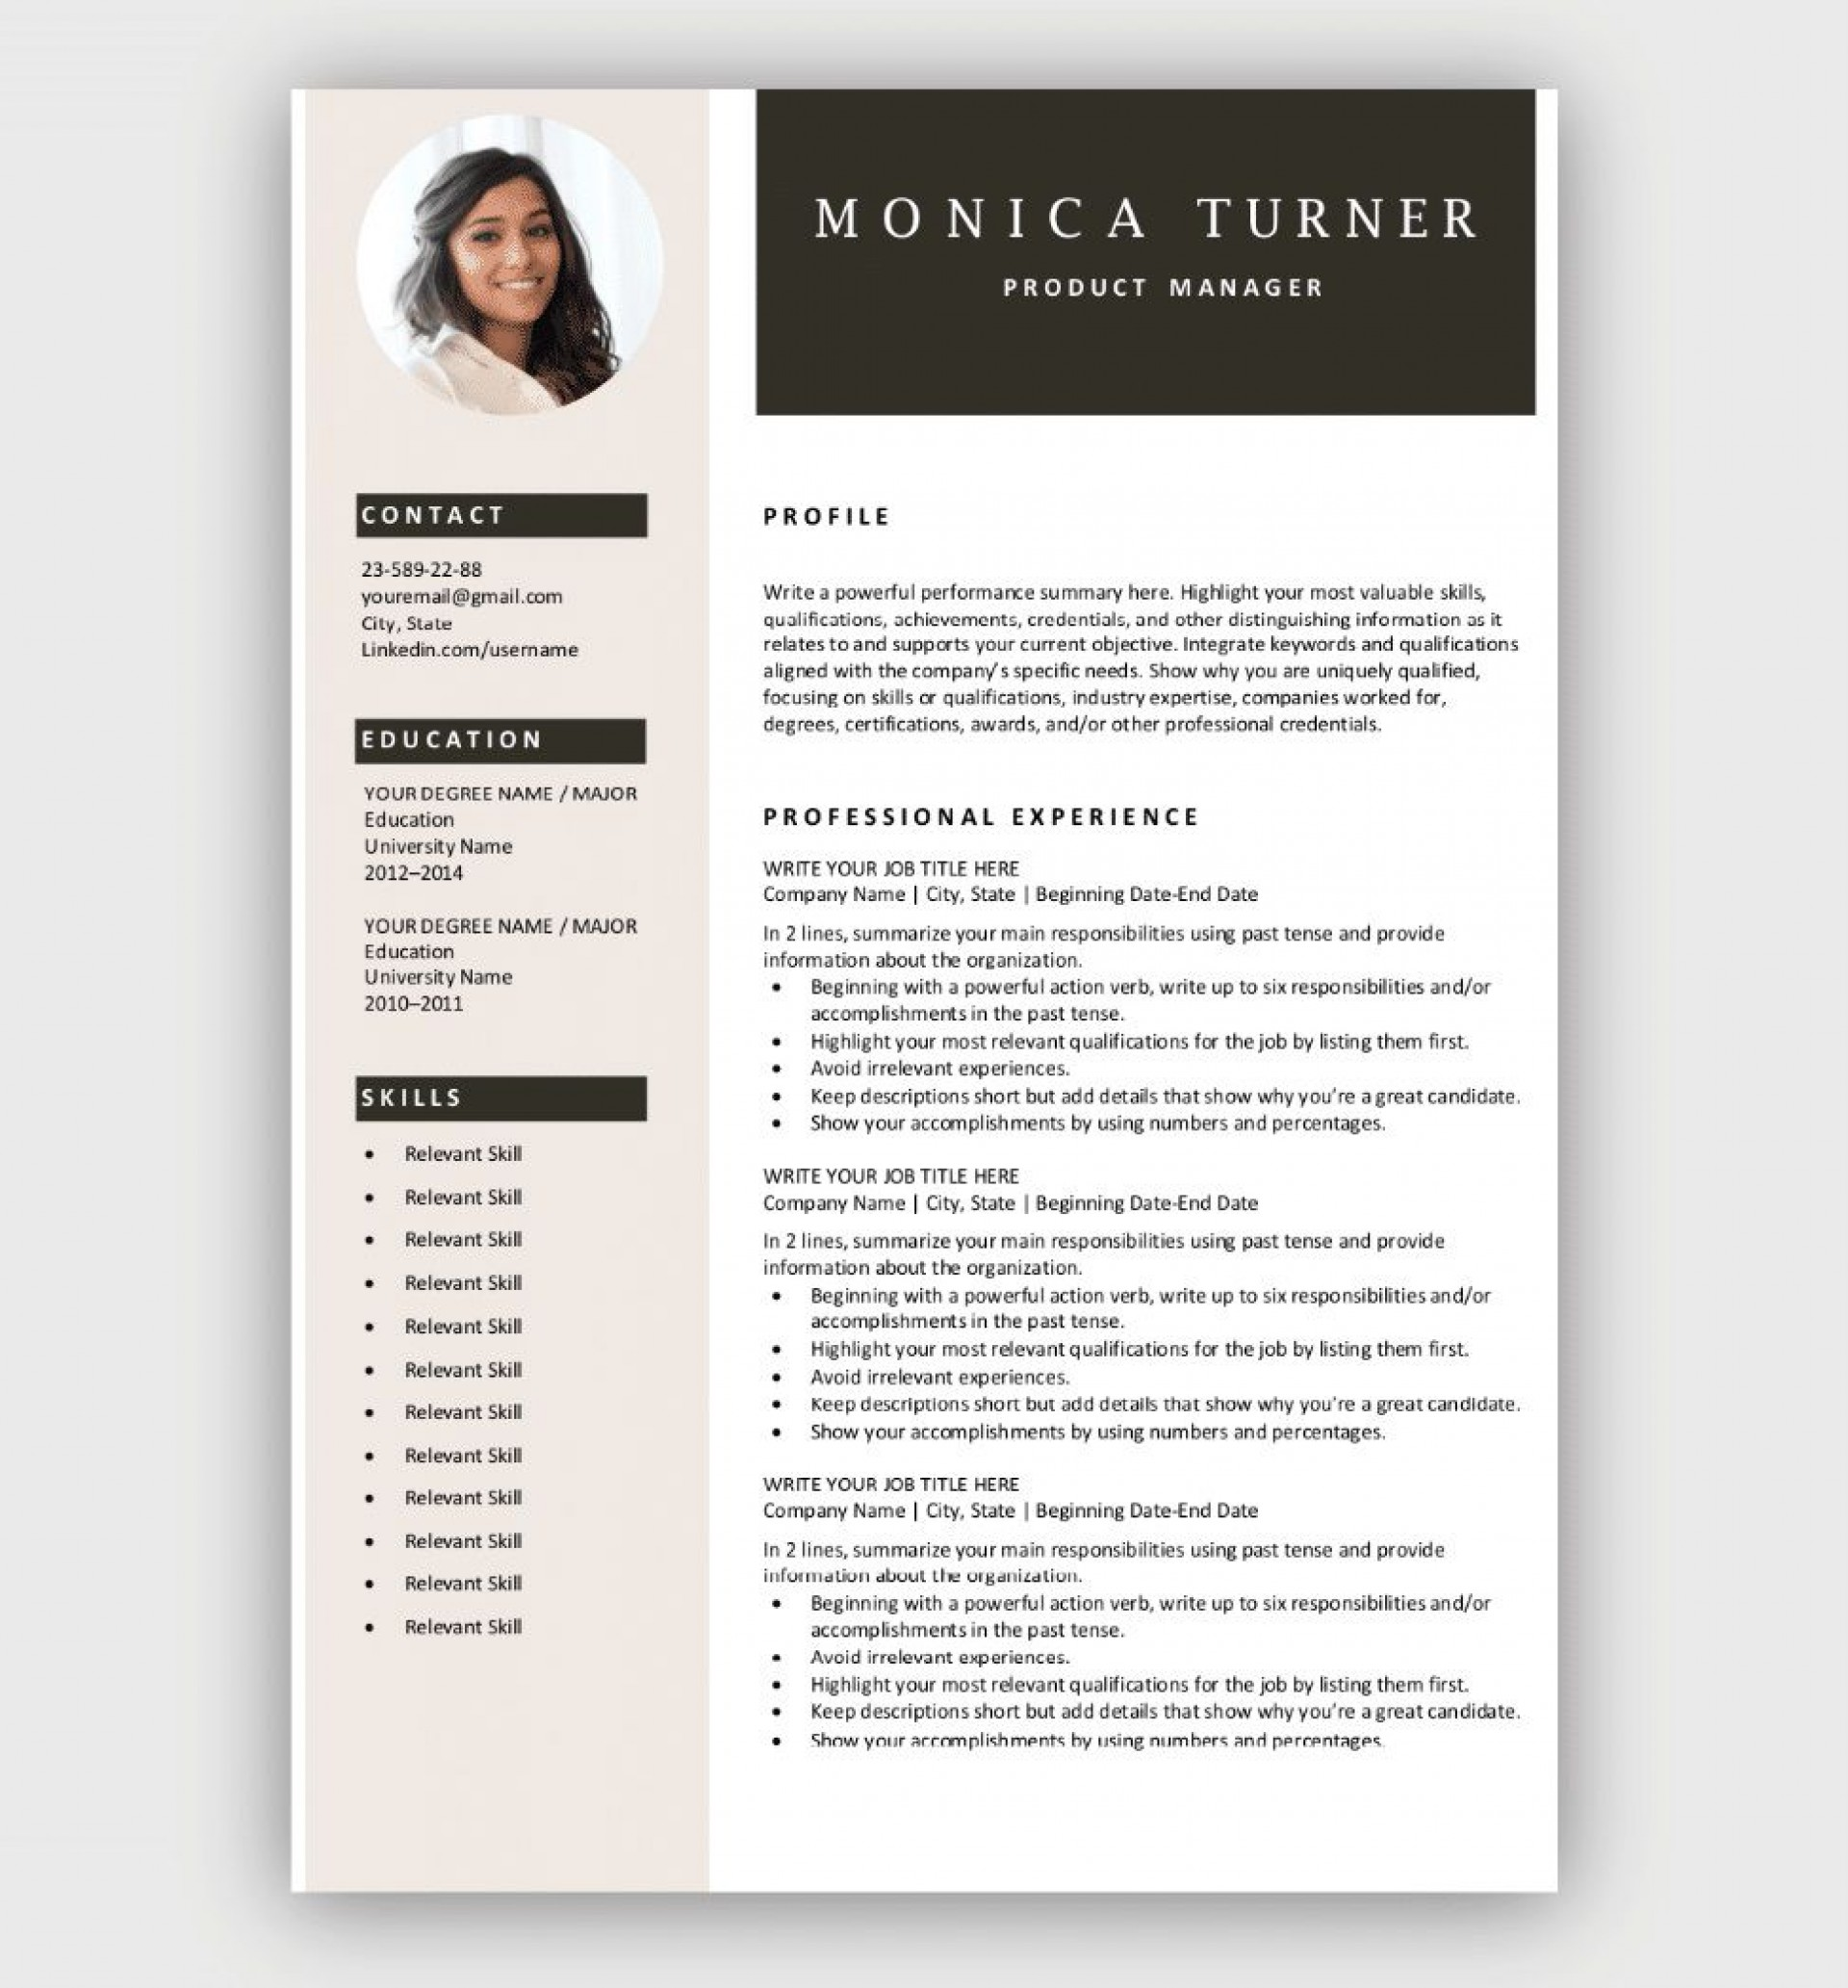 002 Excellent Free Resume Template To Download Inspiration  Professional Format In M Word 2007 For Civil Engineer1920